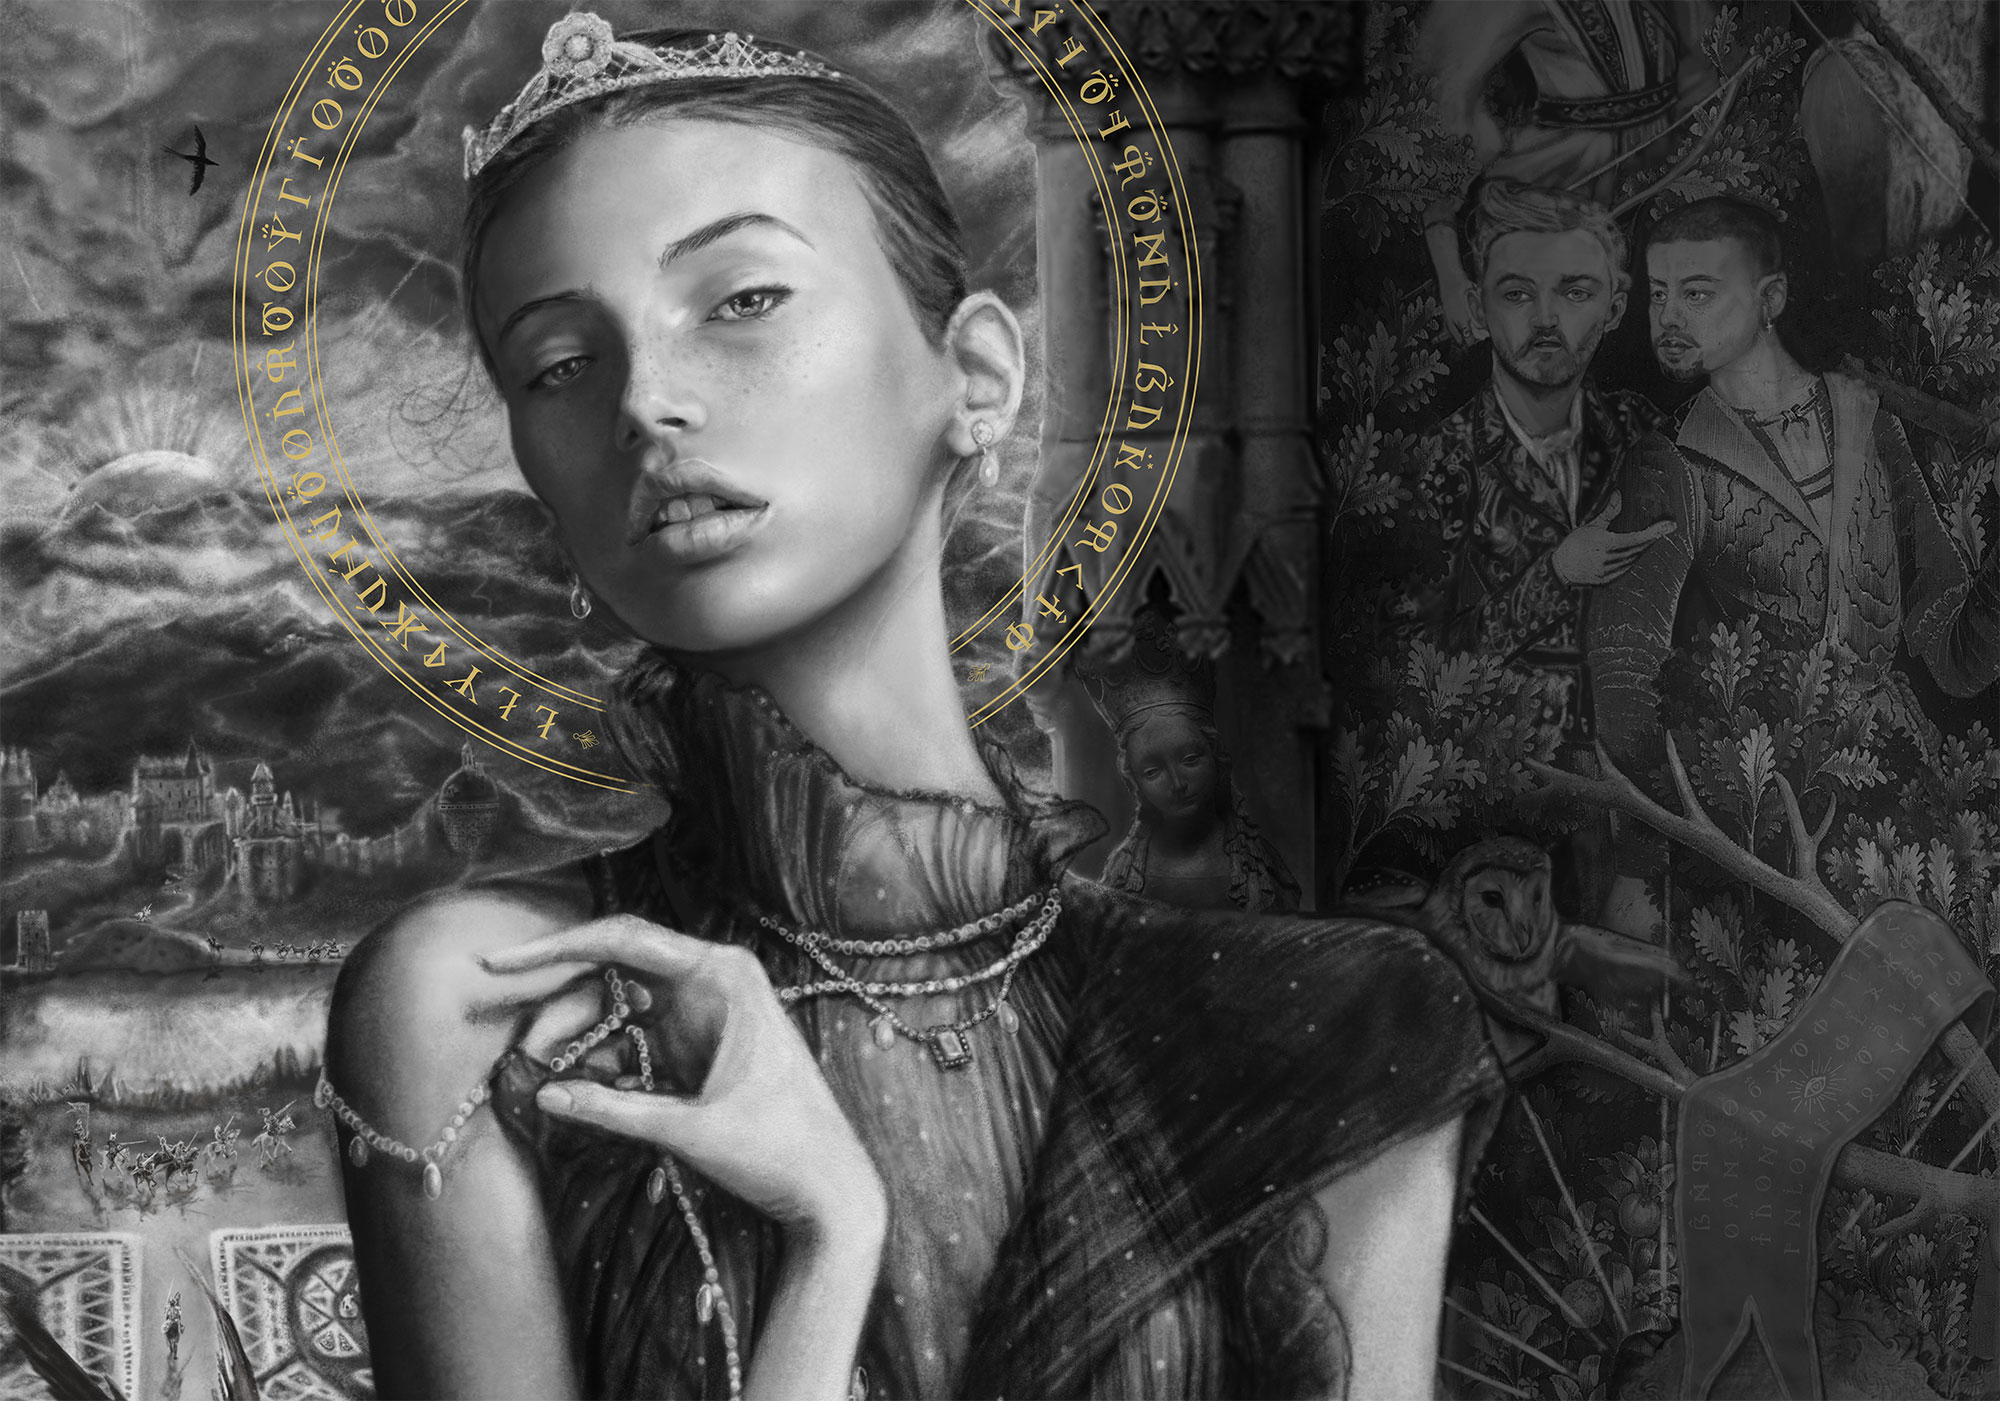 A close up details picture of swedish model mona johannesson wearing a crown and of  a tapestry featuring simon ungless, alexander mcqueen and lily cole by artist Danny Roberts  black and white digital concept sketch